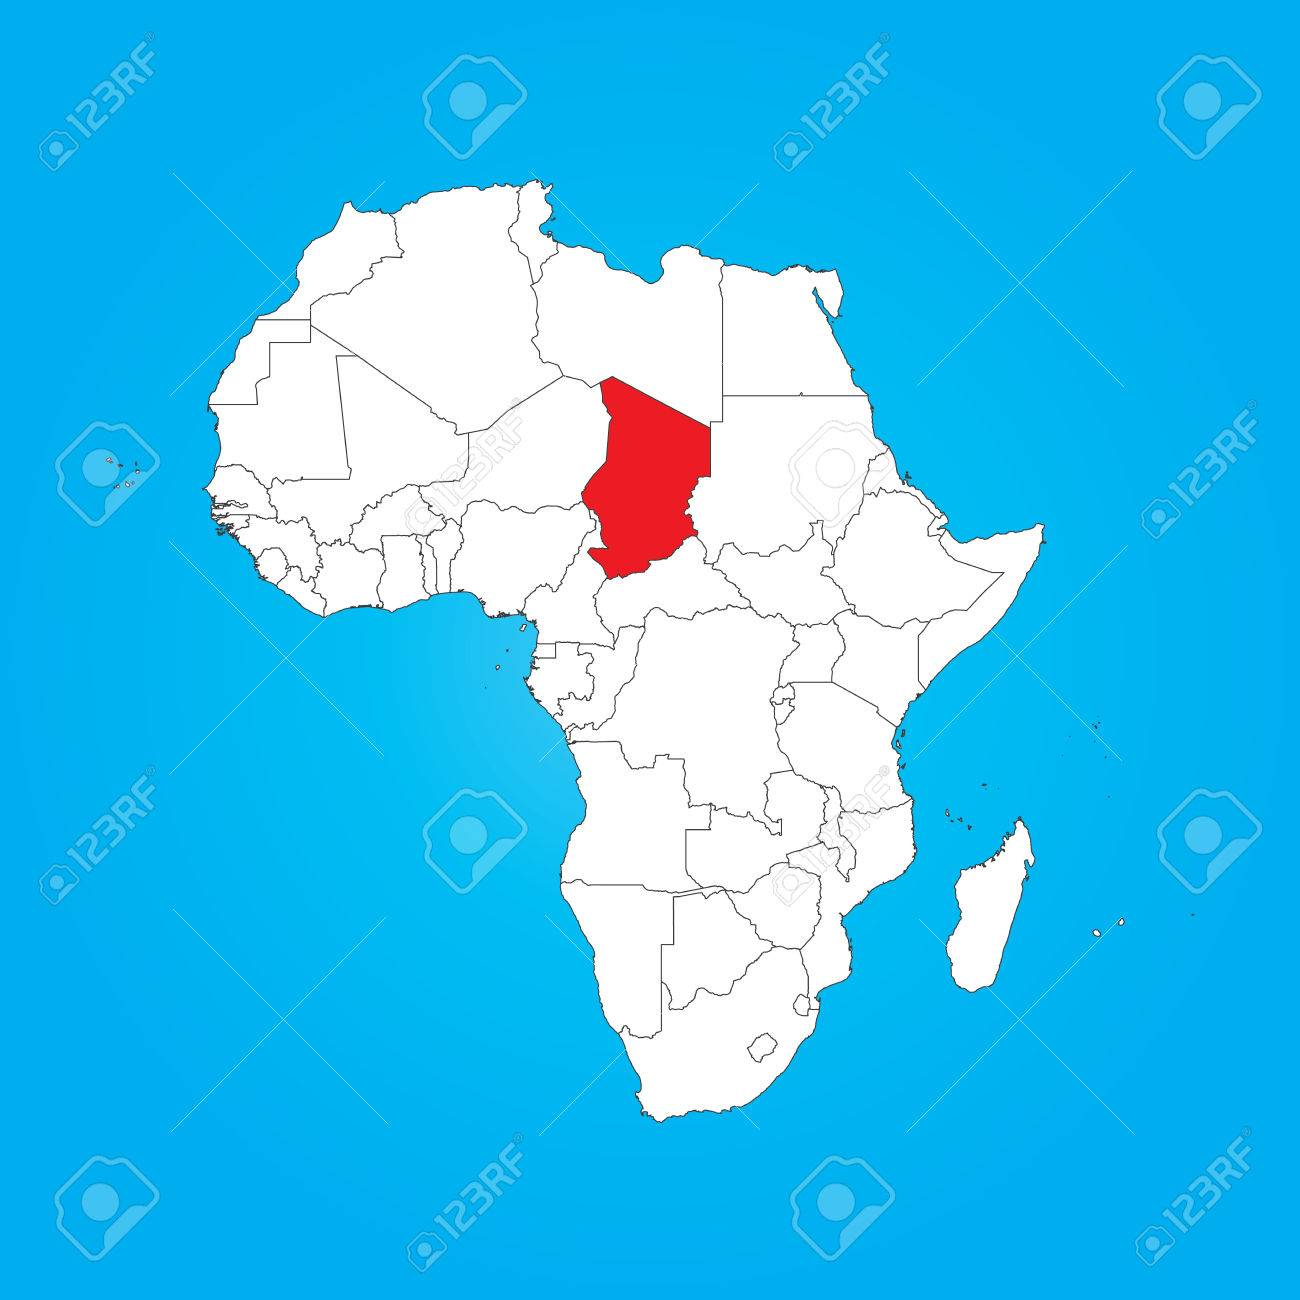 A Map of Africa with a selected country of Chad